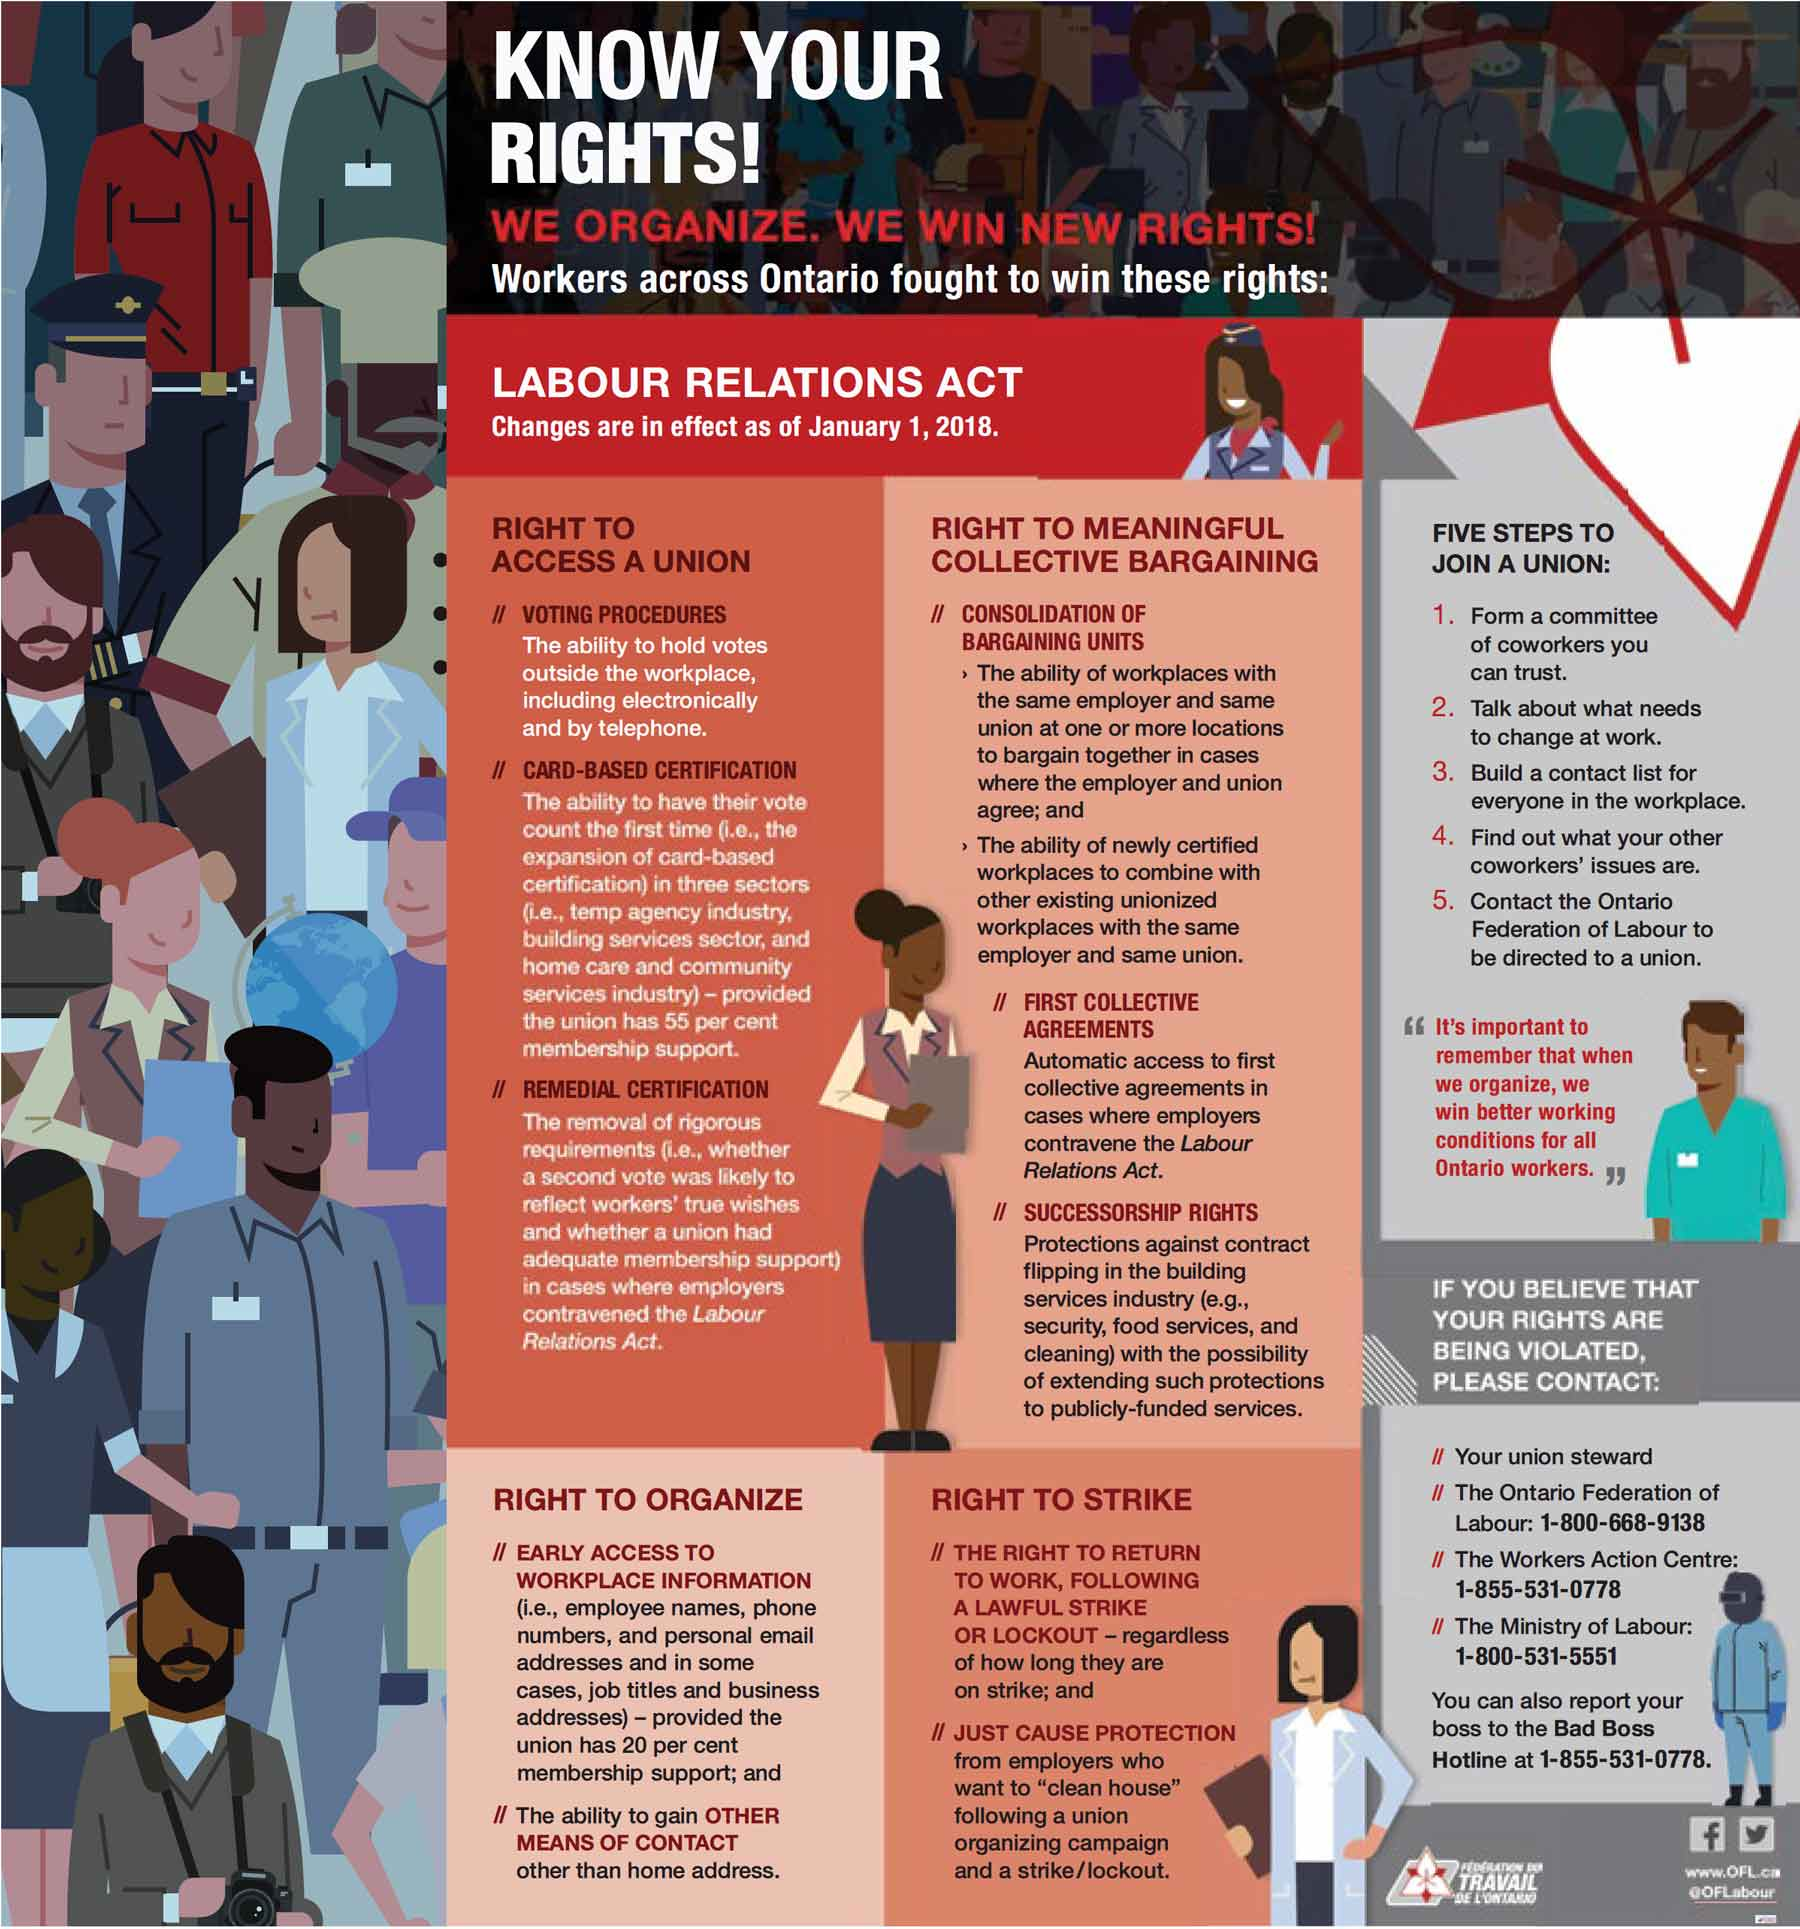 know-your-rights-2.jpg